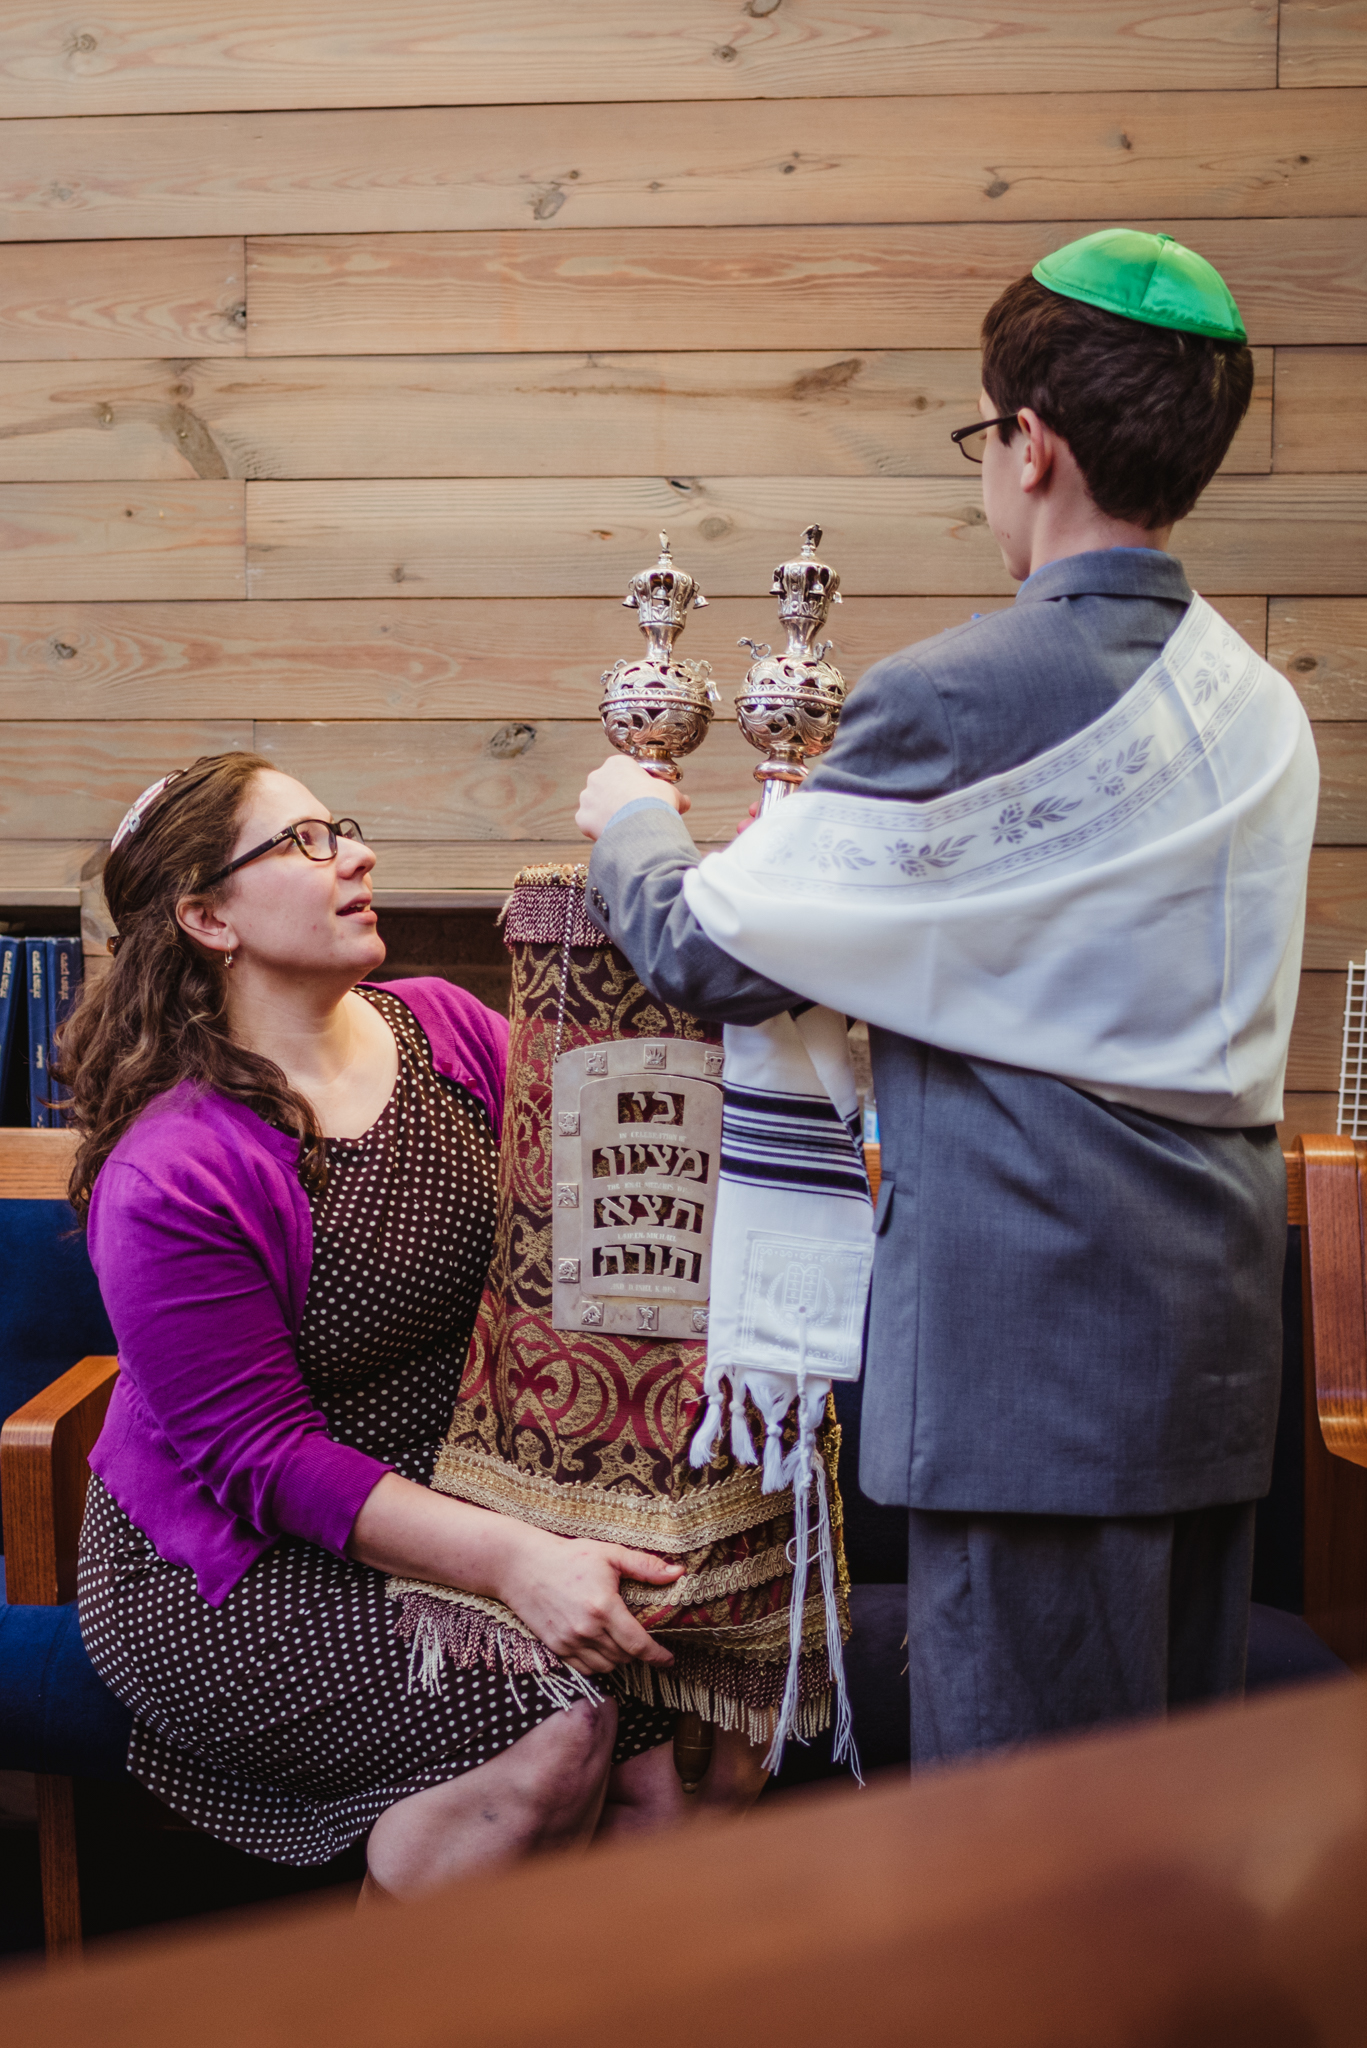 Getting-the-torah-prepared-for-the-ceremony-with-the-rabbi.jpg